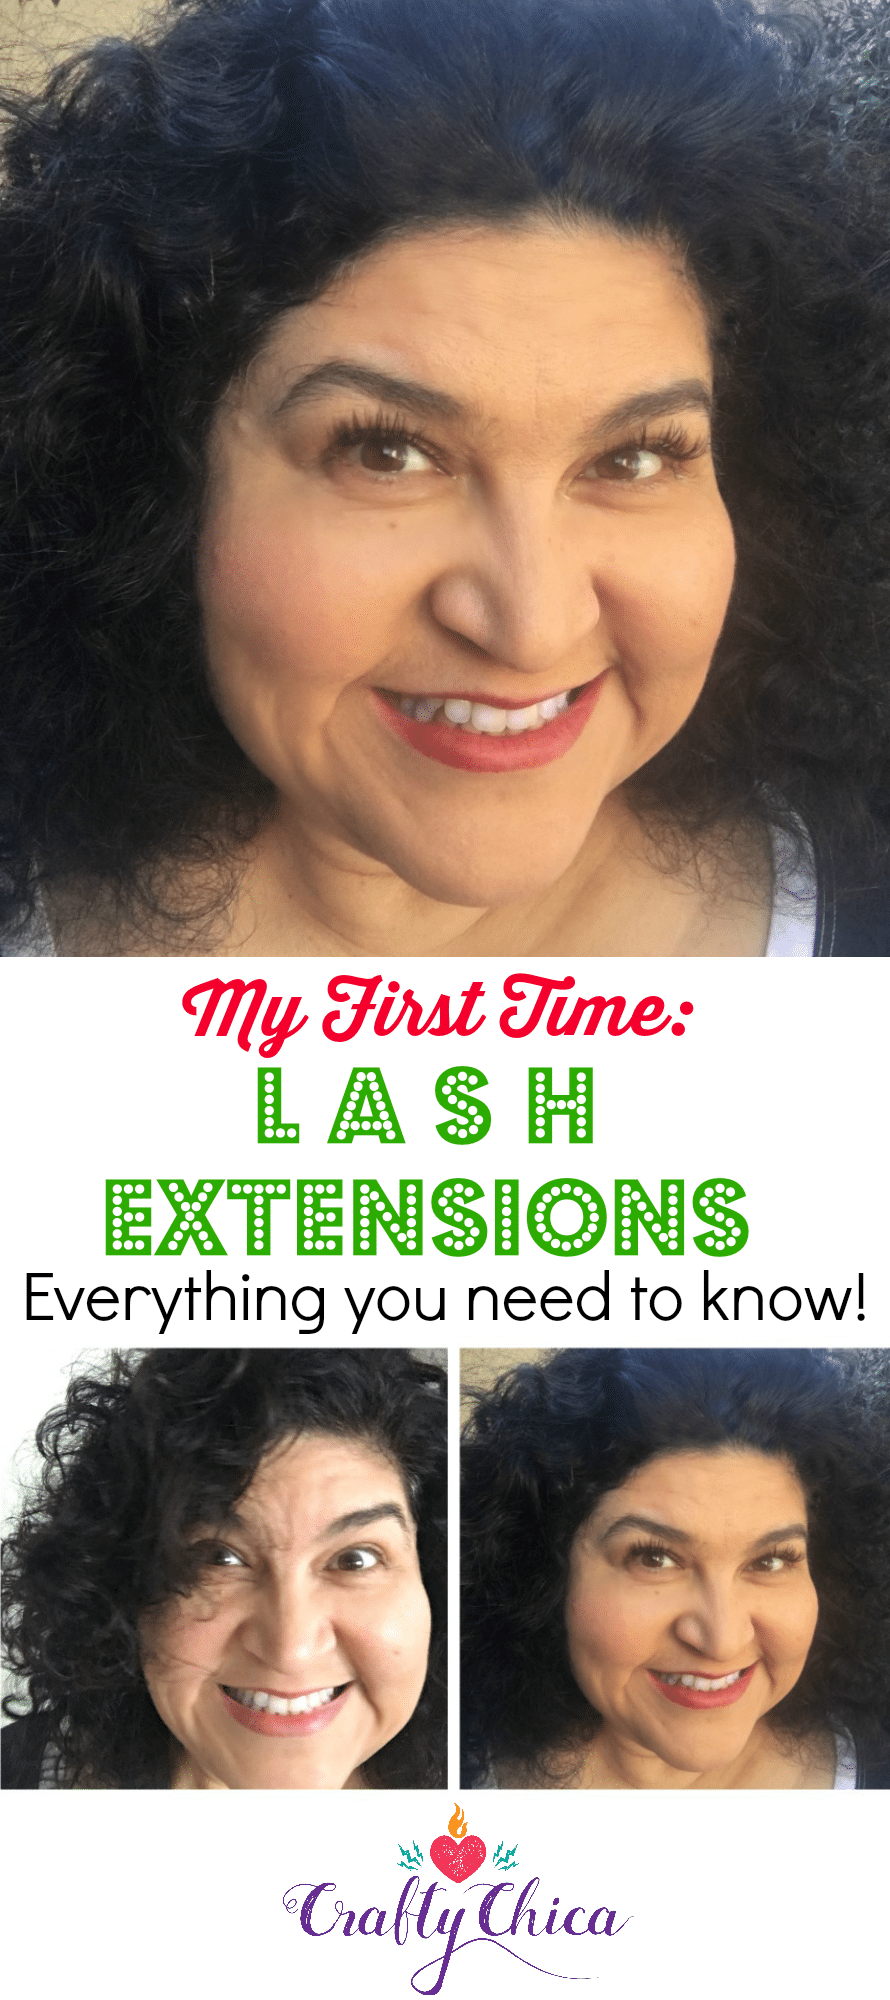 My experience with lash extensions - The Crafty Chica